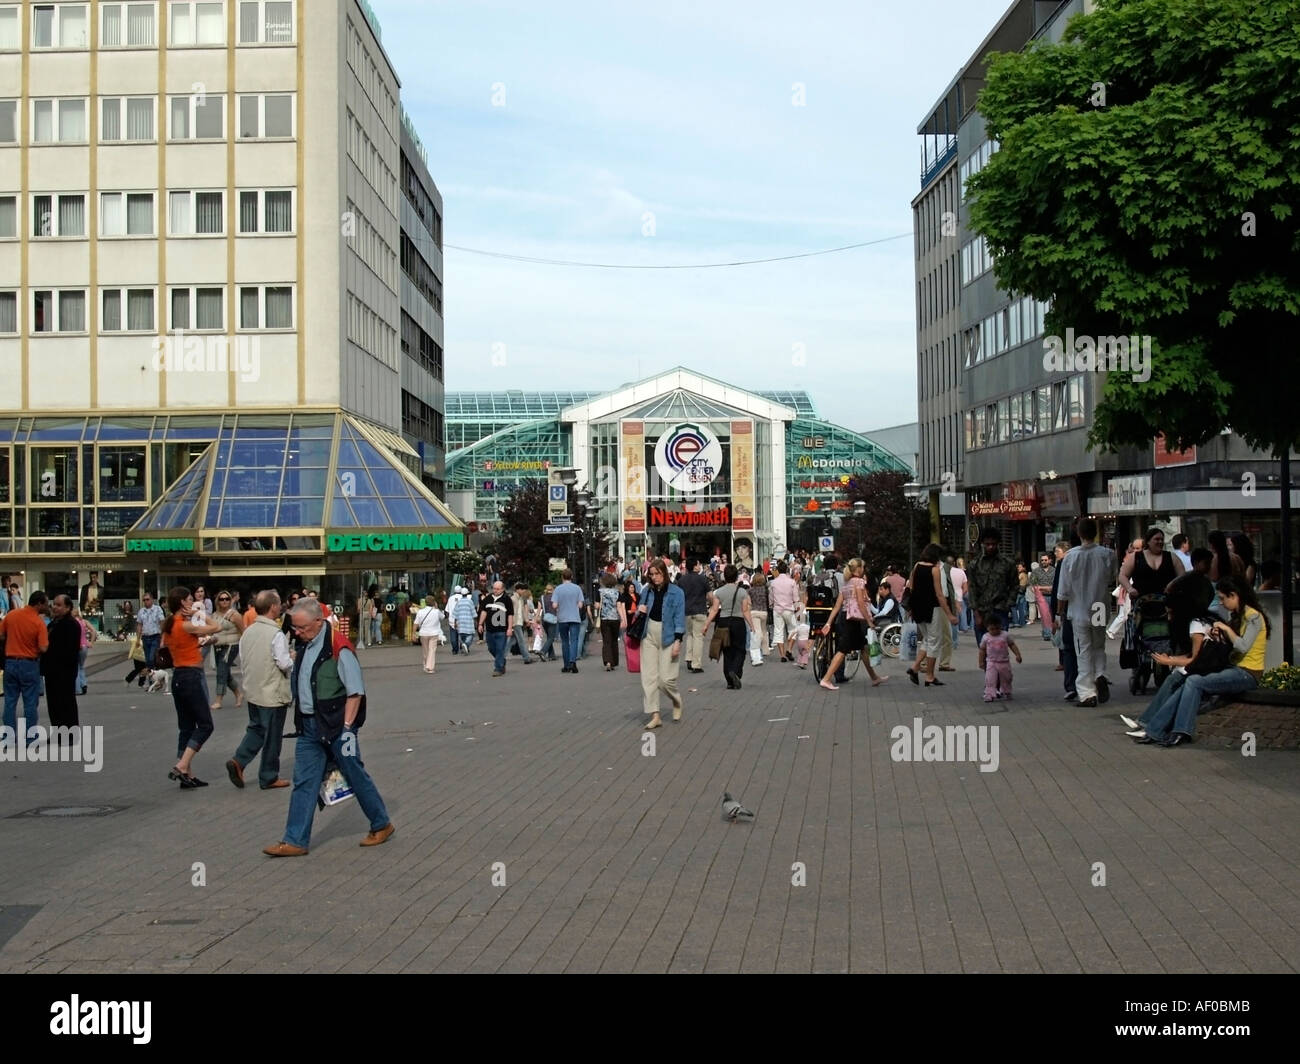 entrance to the vitreous passage of the shopping centre center City Center in the pedestrials area of the town Essen - Stock Image